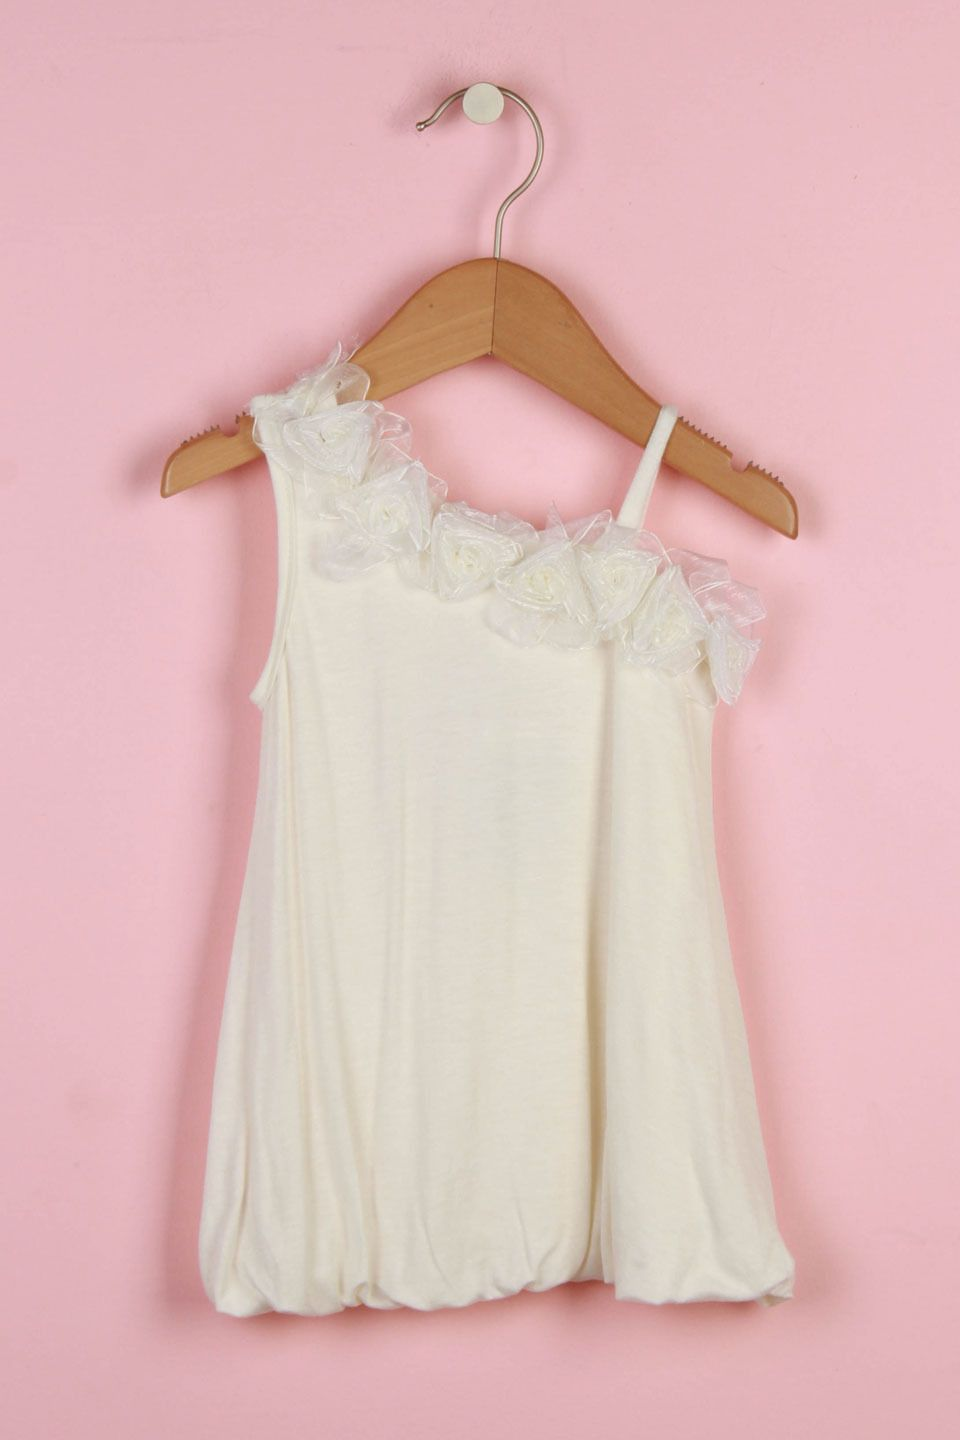 Paulinie collection girlsu knit bubble dress in ivory beyond the